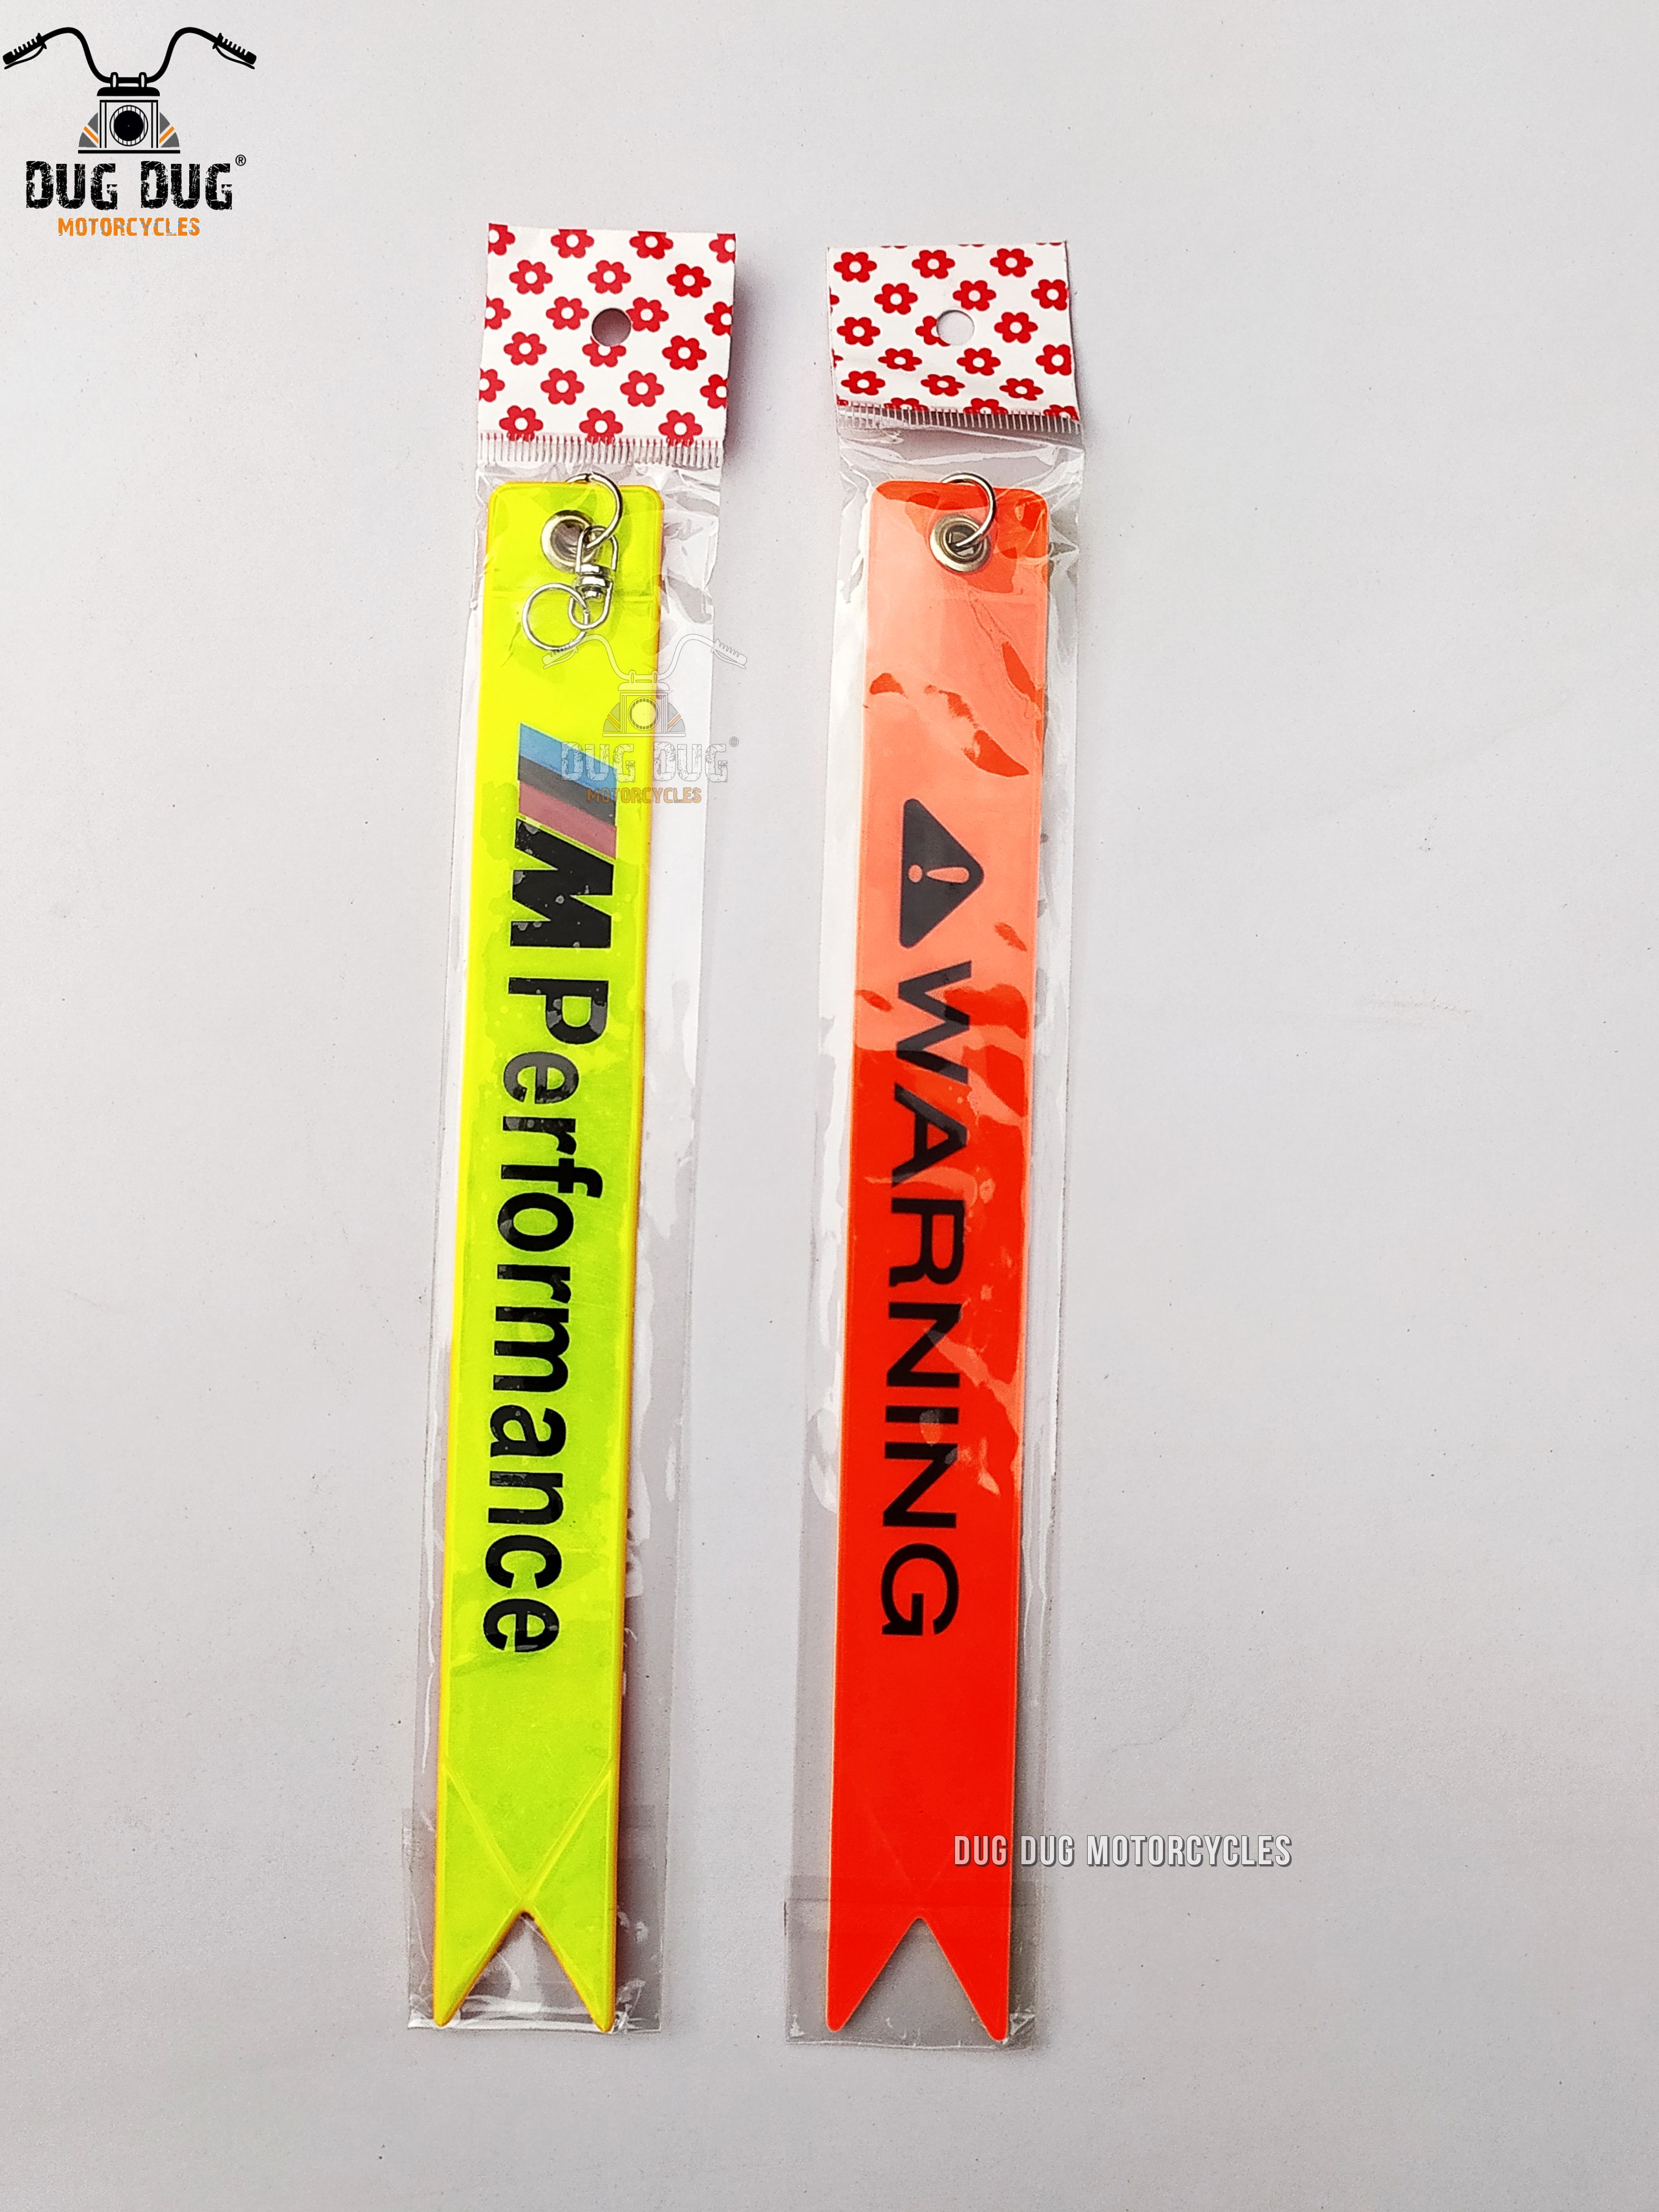 Warning Tag for Cars | Warning Tags for Motorcycles